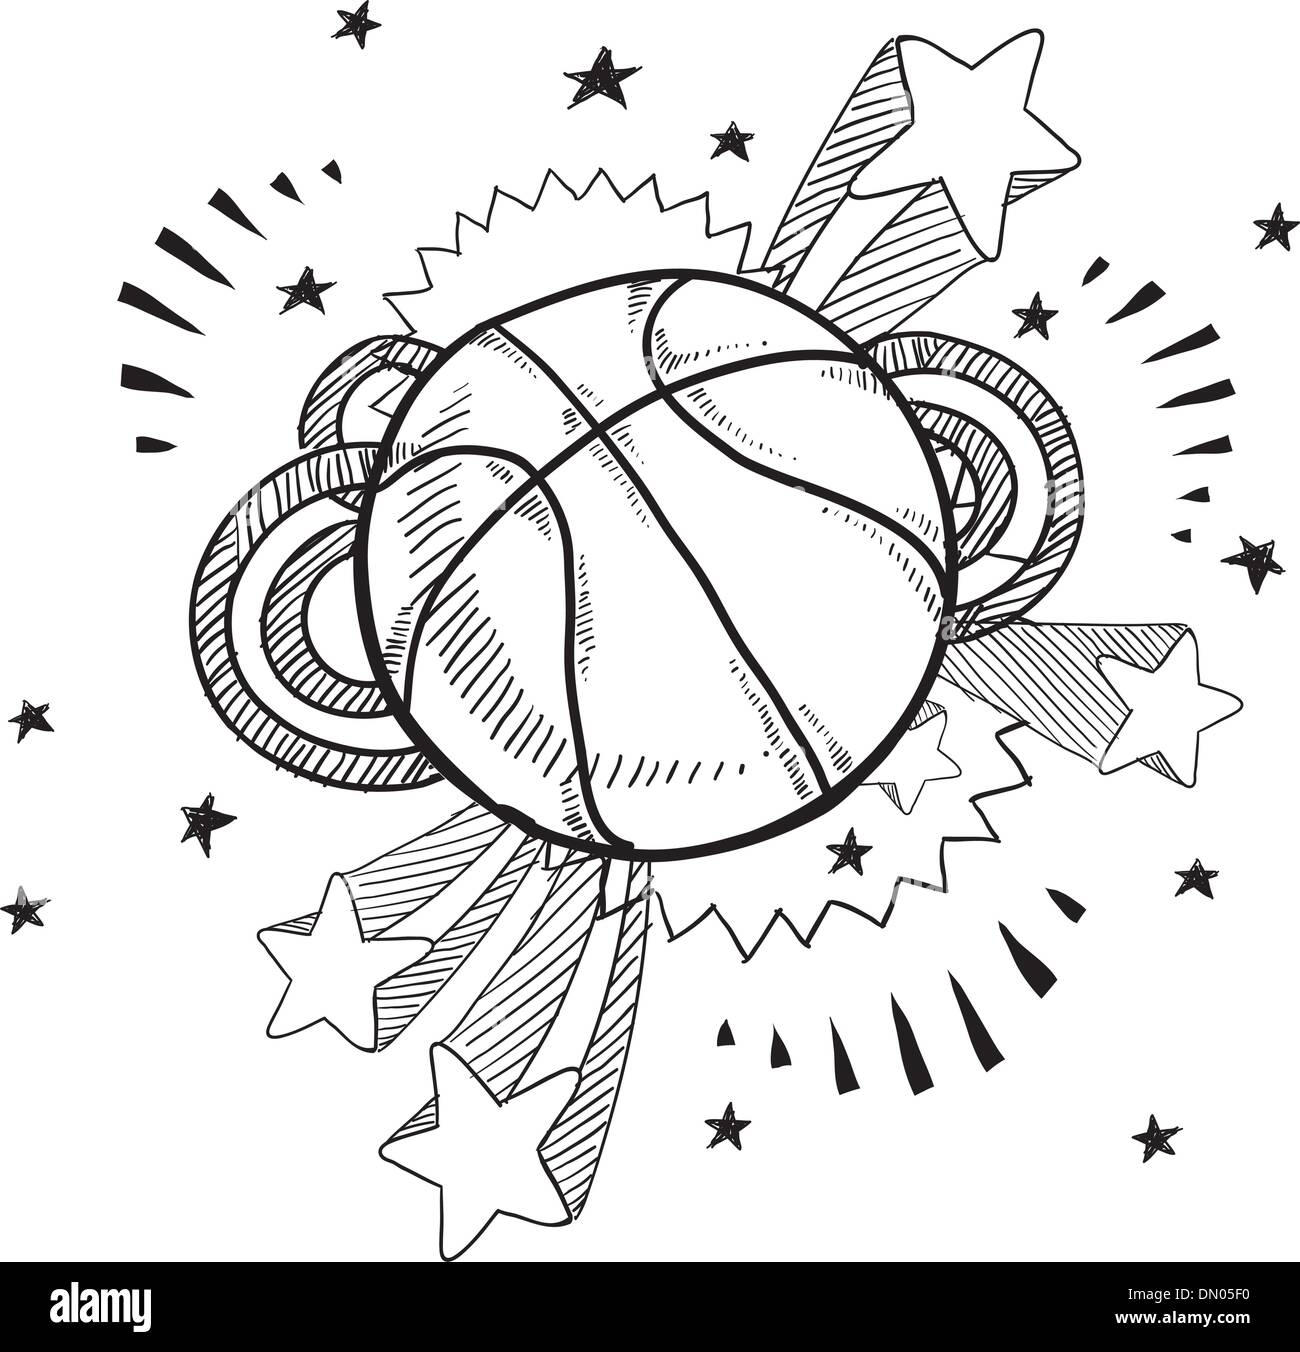 Basketball excitement sketch - Stock Image